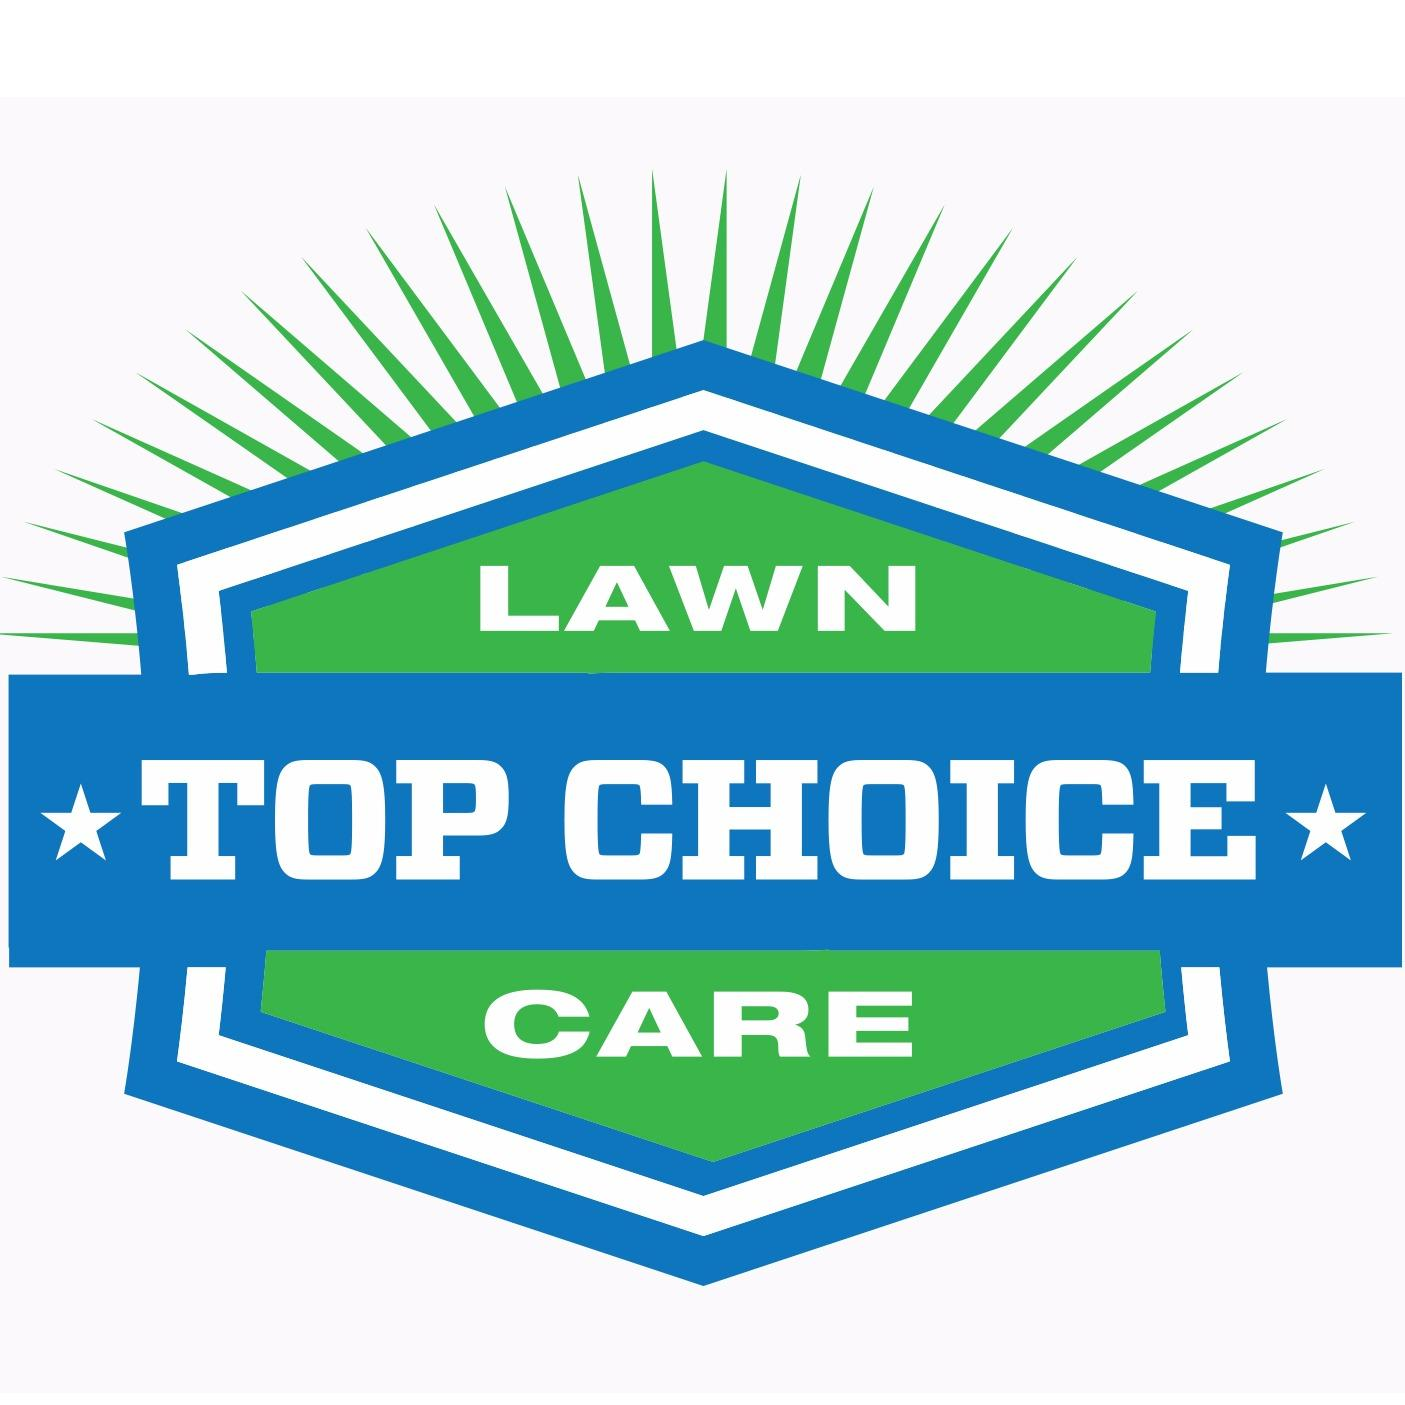 Top choice lawn care coupons near me in 8coupons for Best garden maintenance